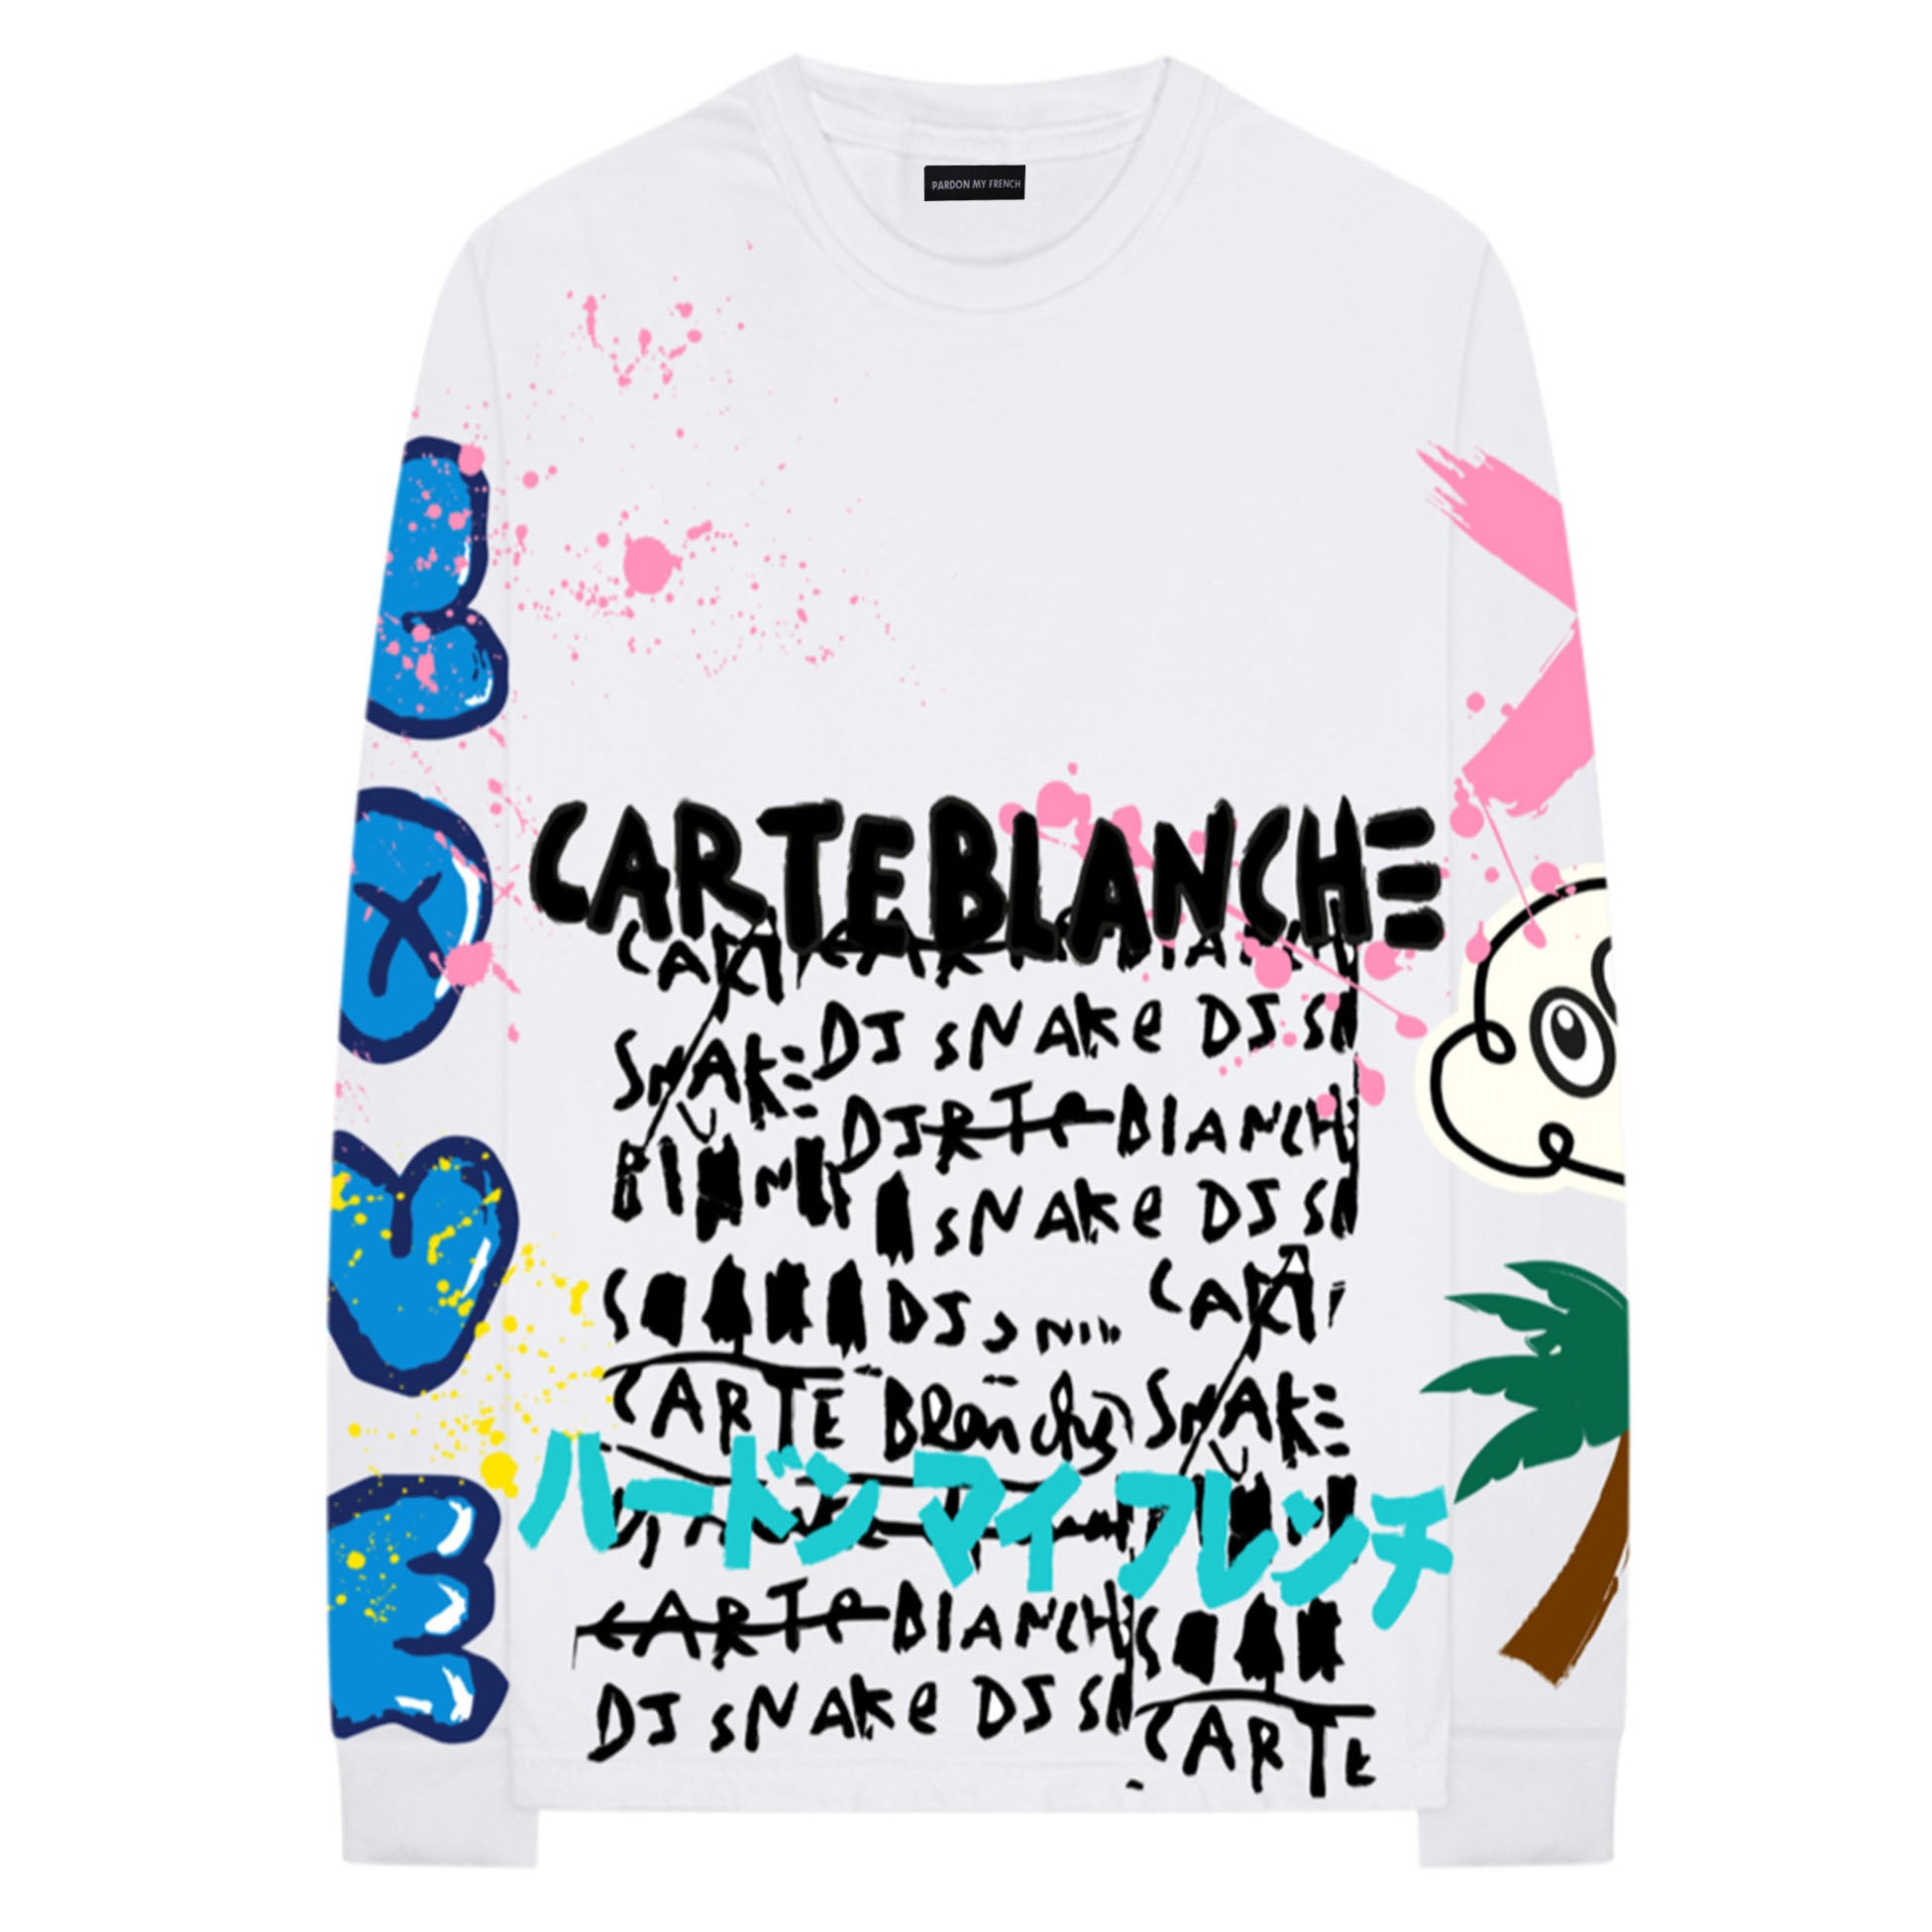 competitive price 8e5bb 2dba8 CARTE-BLANCHE LONG SLEEVE T-SHIRT - Pardon My French